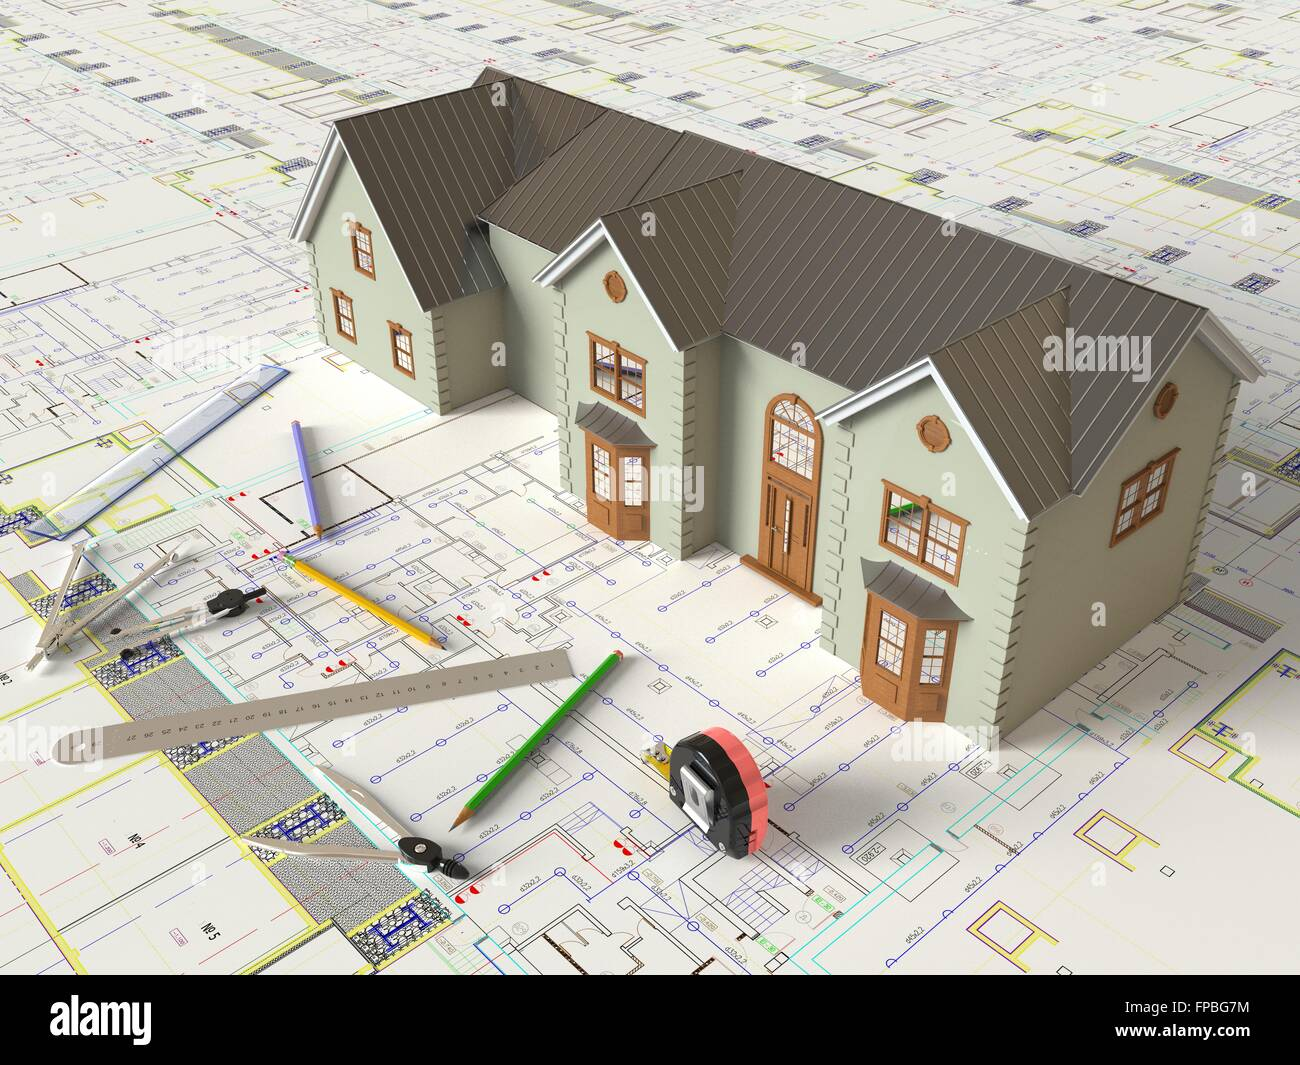 3d Rendering House Layout And Architectural Drawings Stock Photo